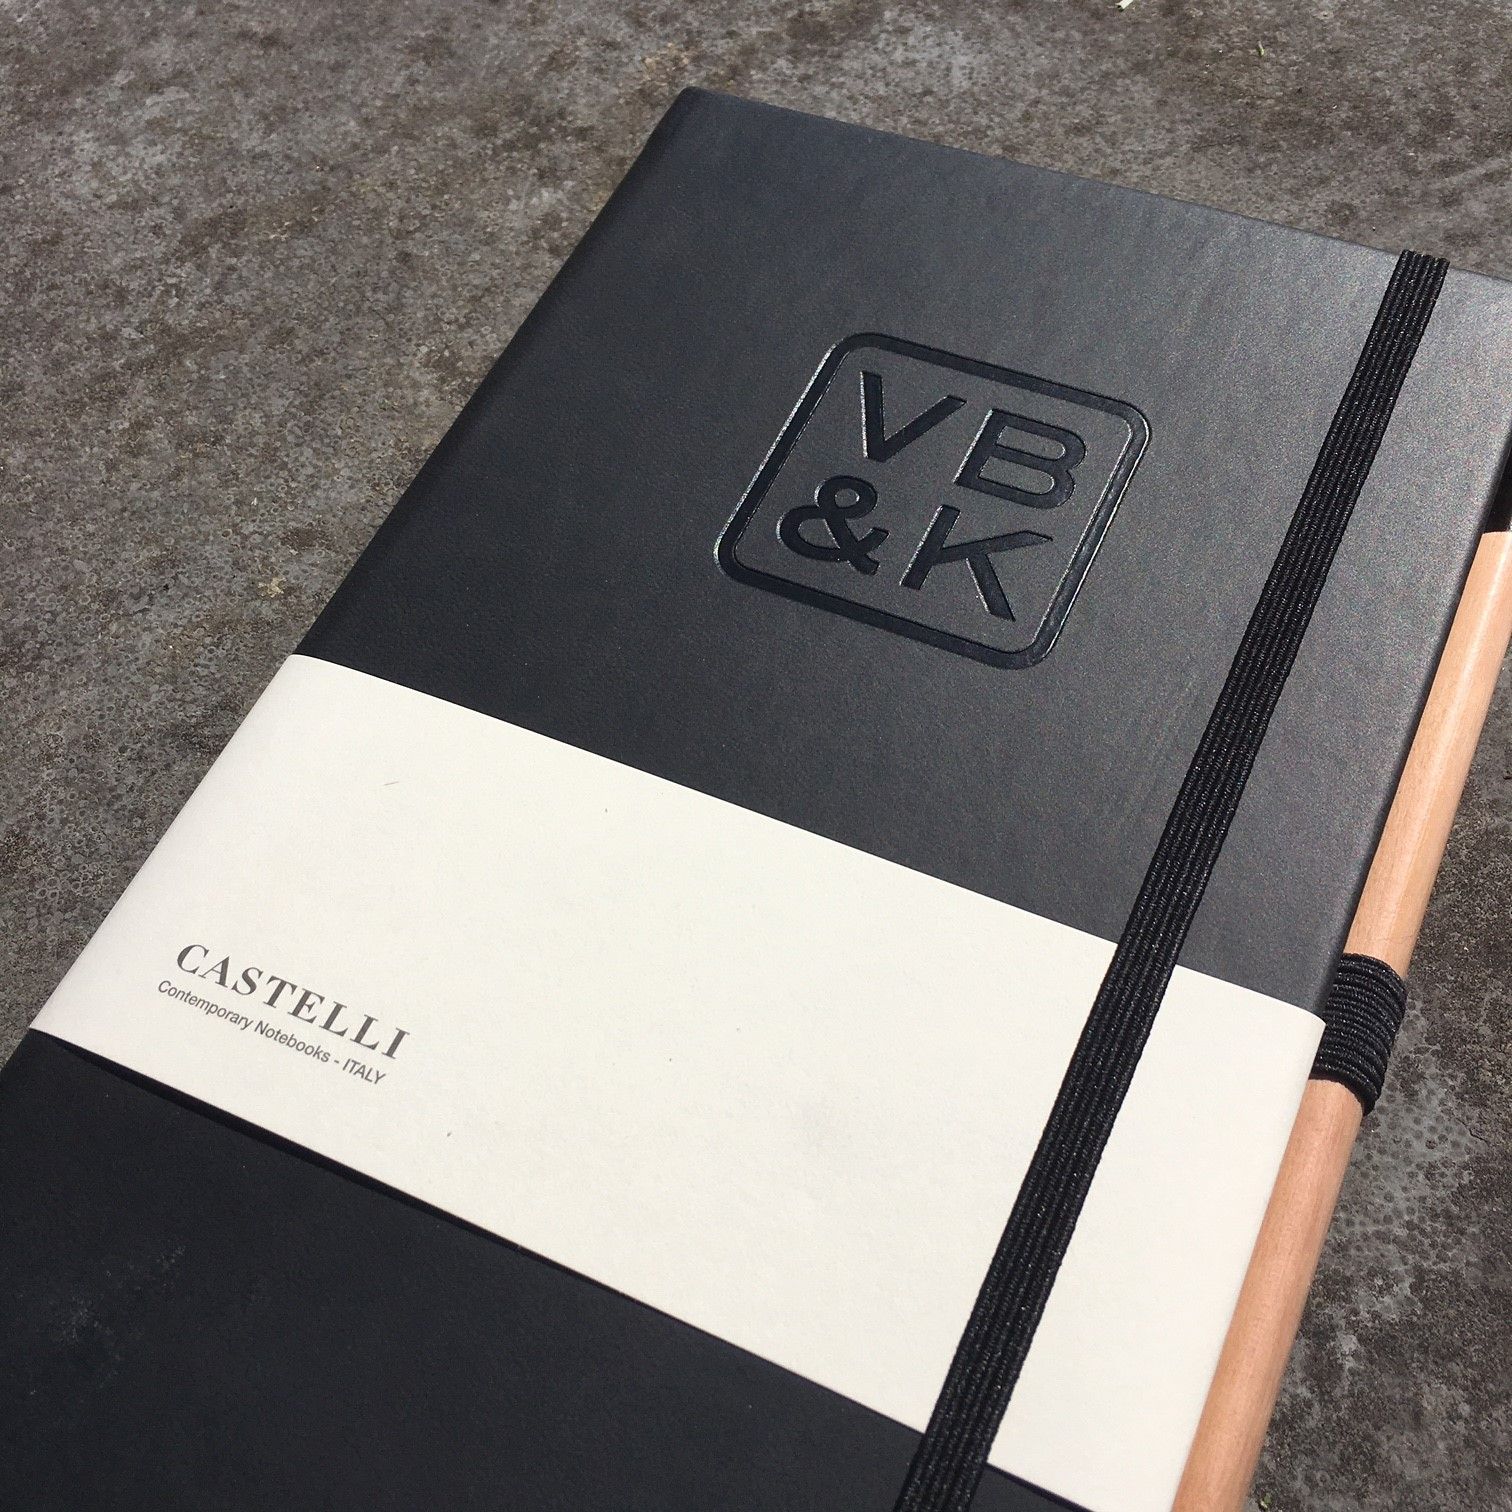 Castelli notitieboek zwart met preeg the notepad factory